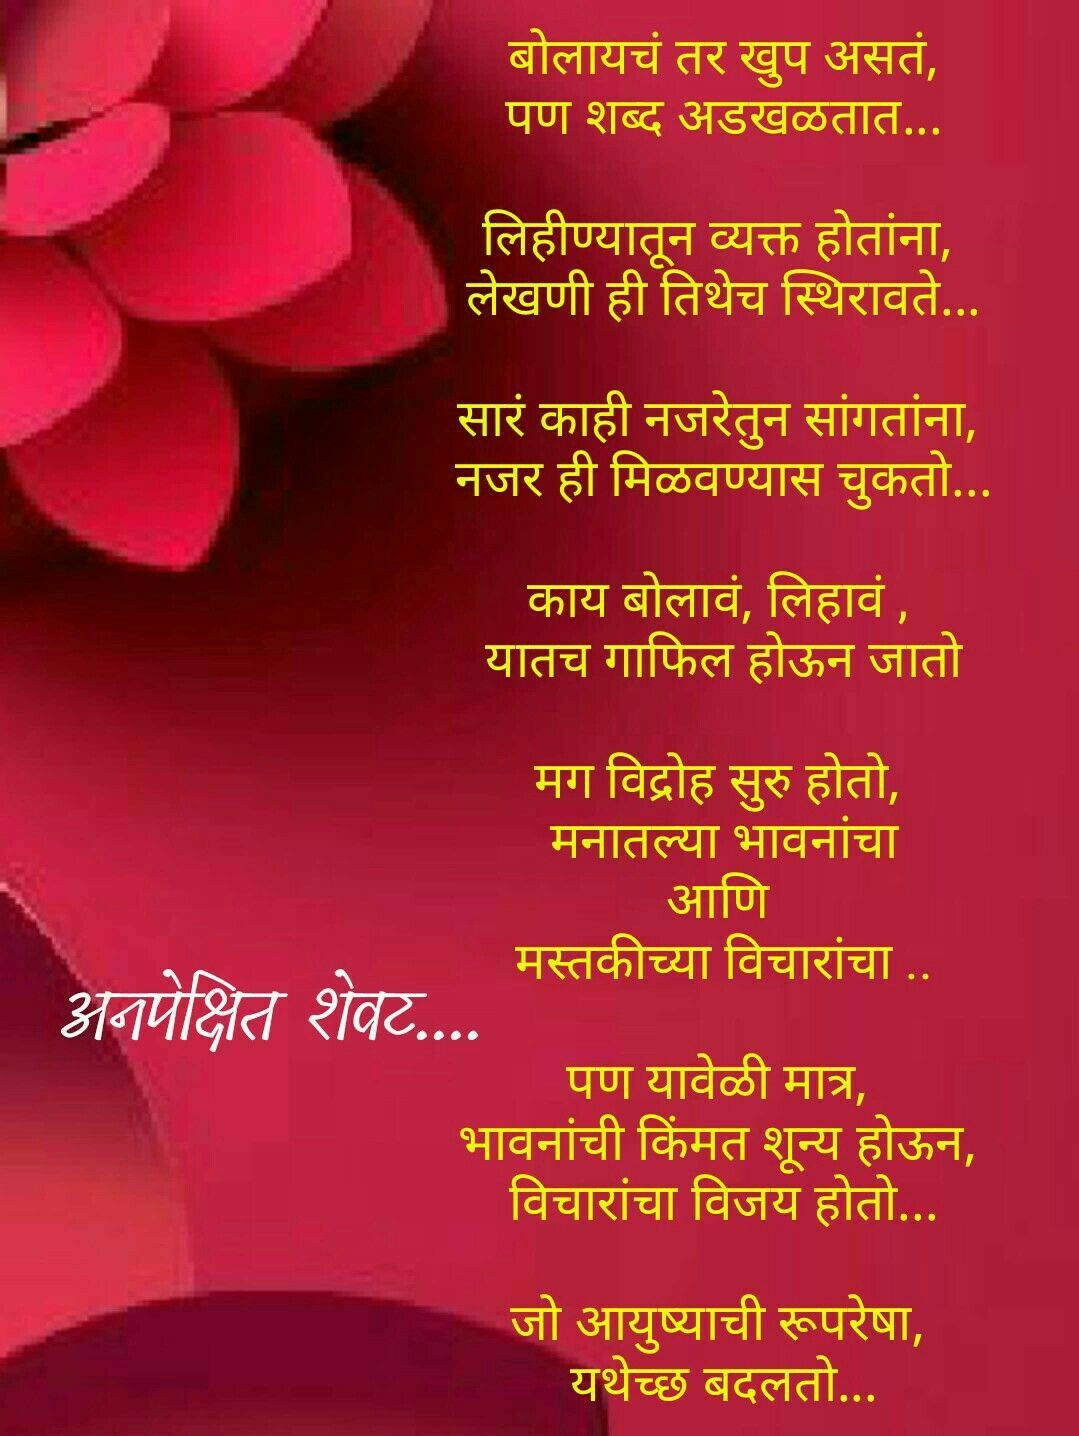 Pin by Eureka on ती असती तर Poems Birthday wishes for